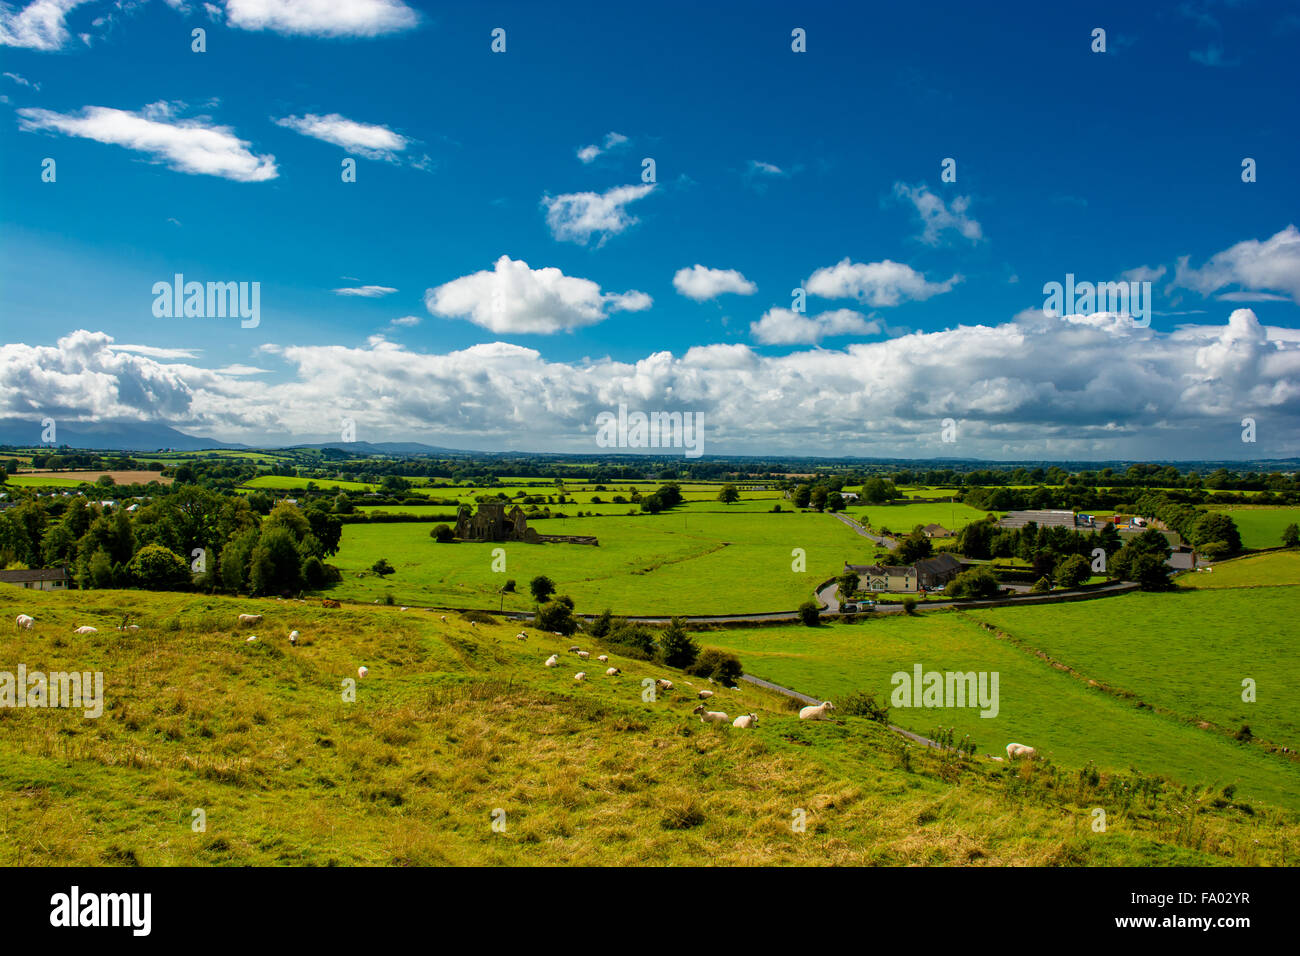 Herd Of Cattle In Landscape Of Tipperary In Ireland - Stock Image